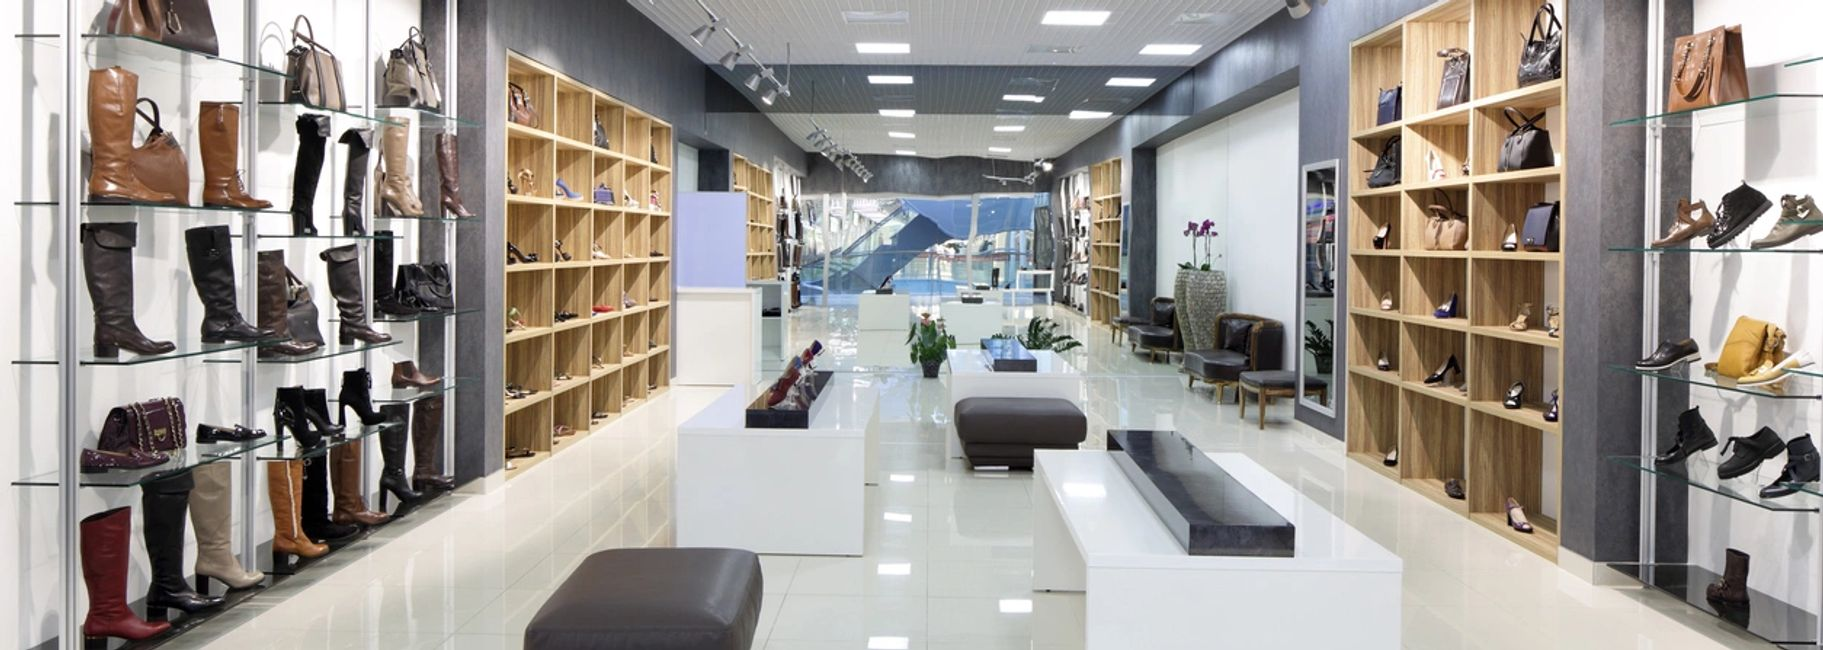 Store Cleaning Miami, Aomega Cleaning, Cleaning Services